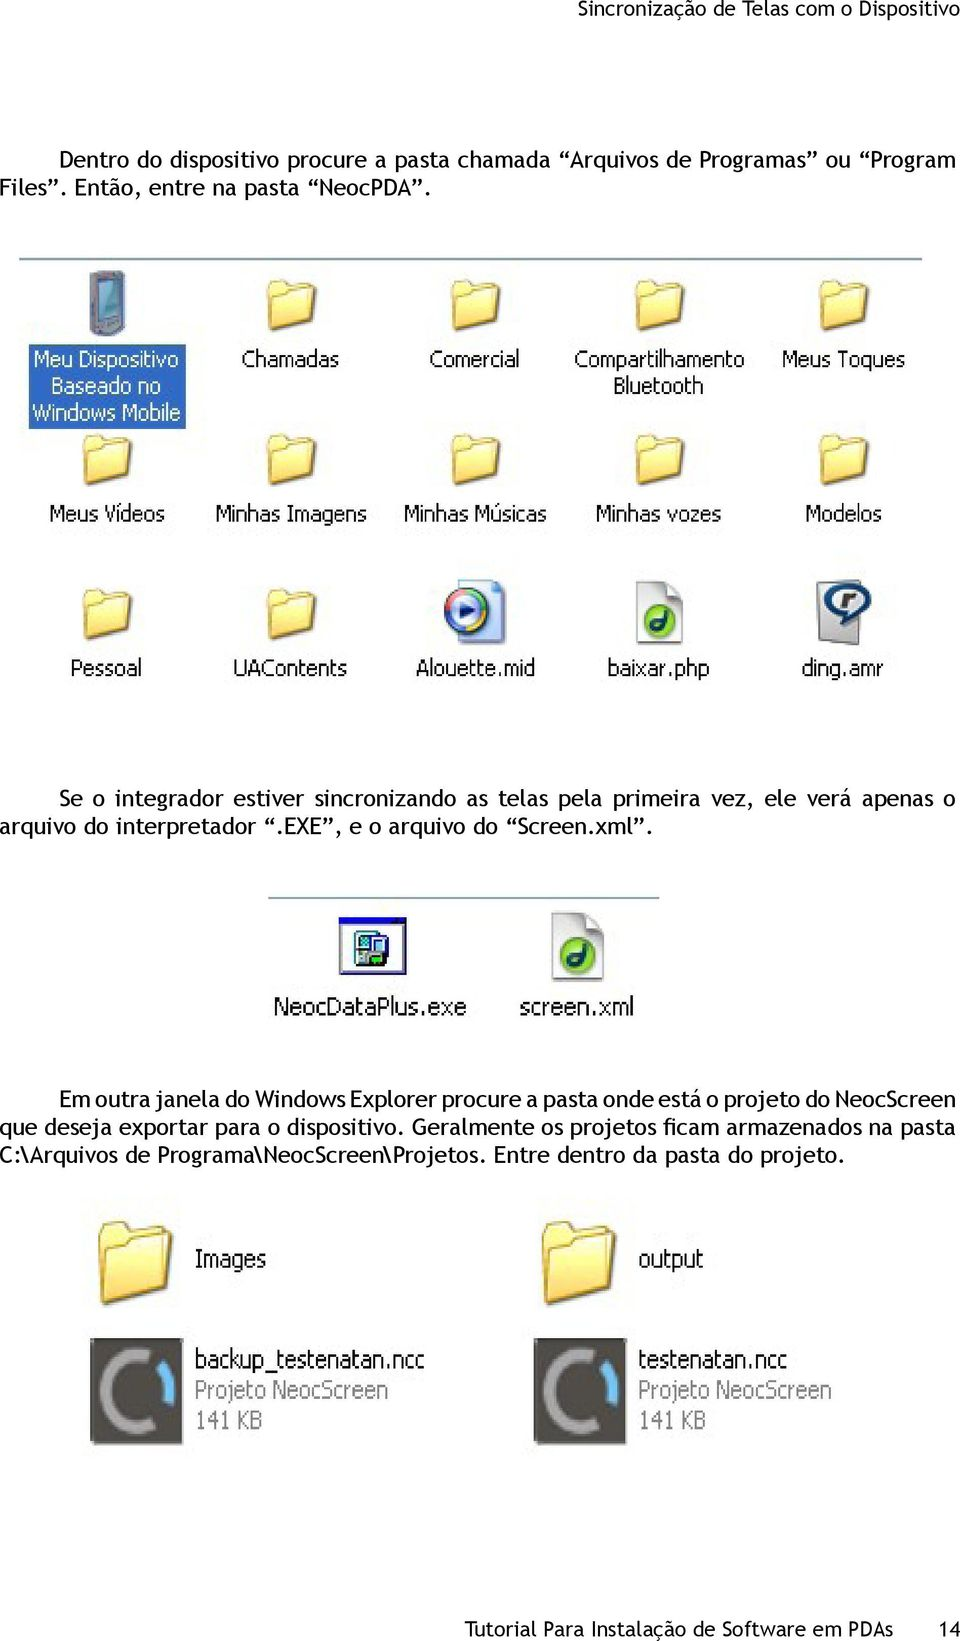 exe, e o arquivo do Screen.xml.